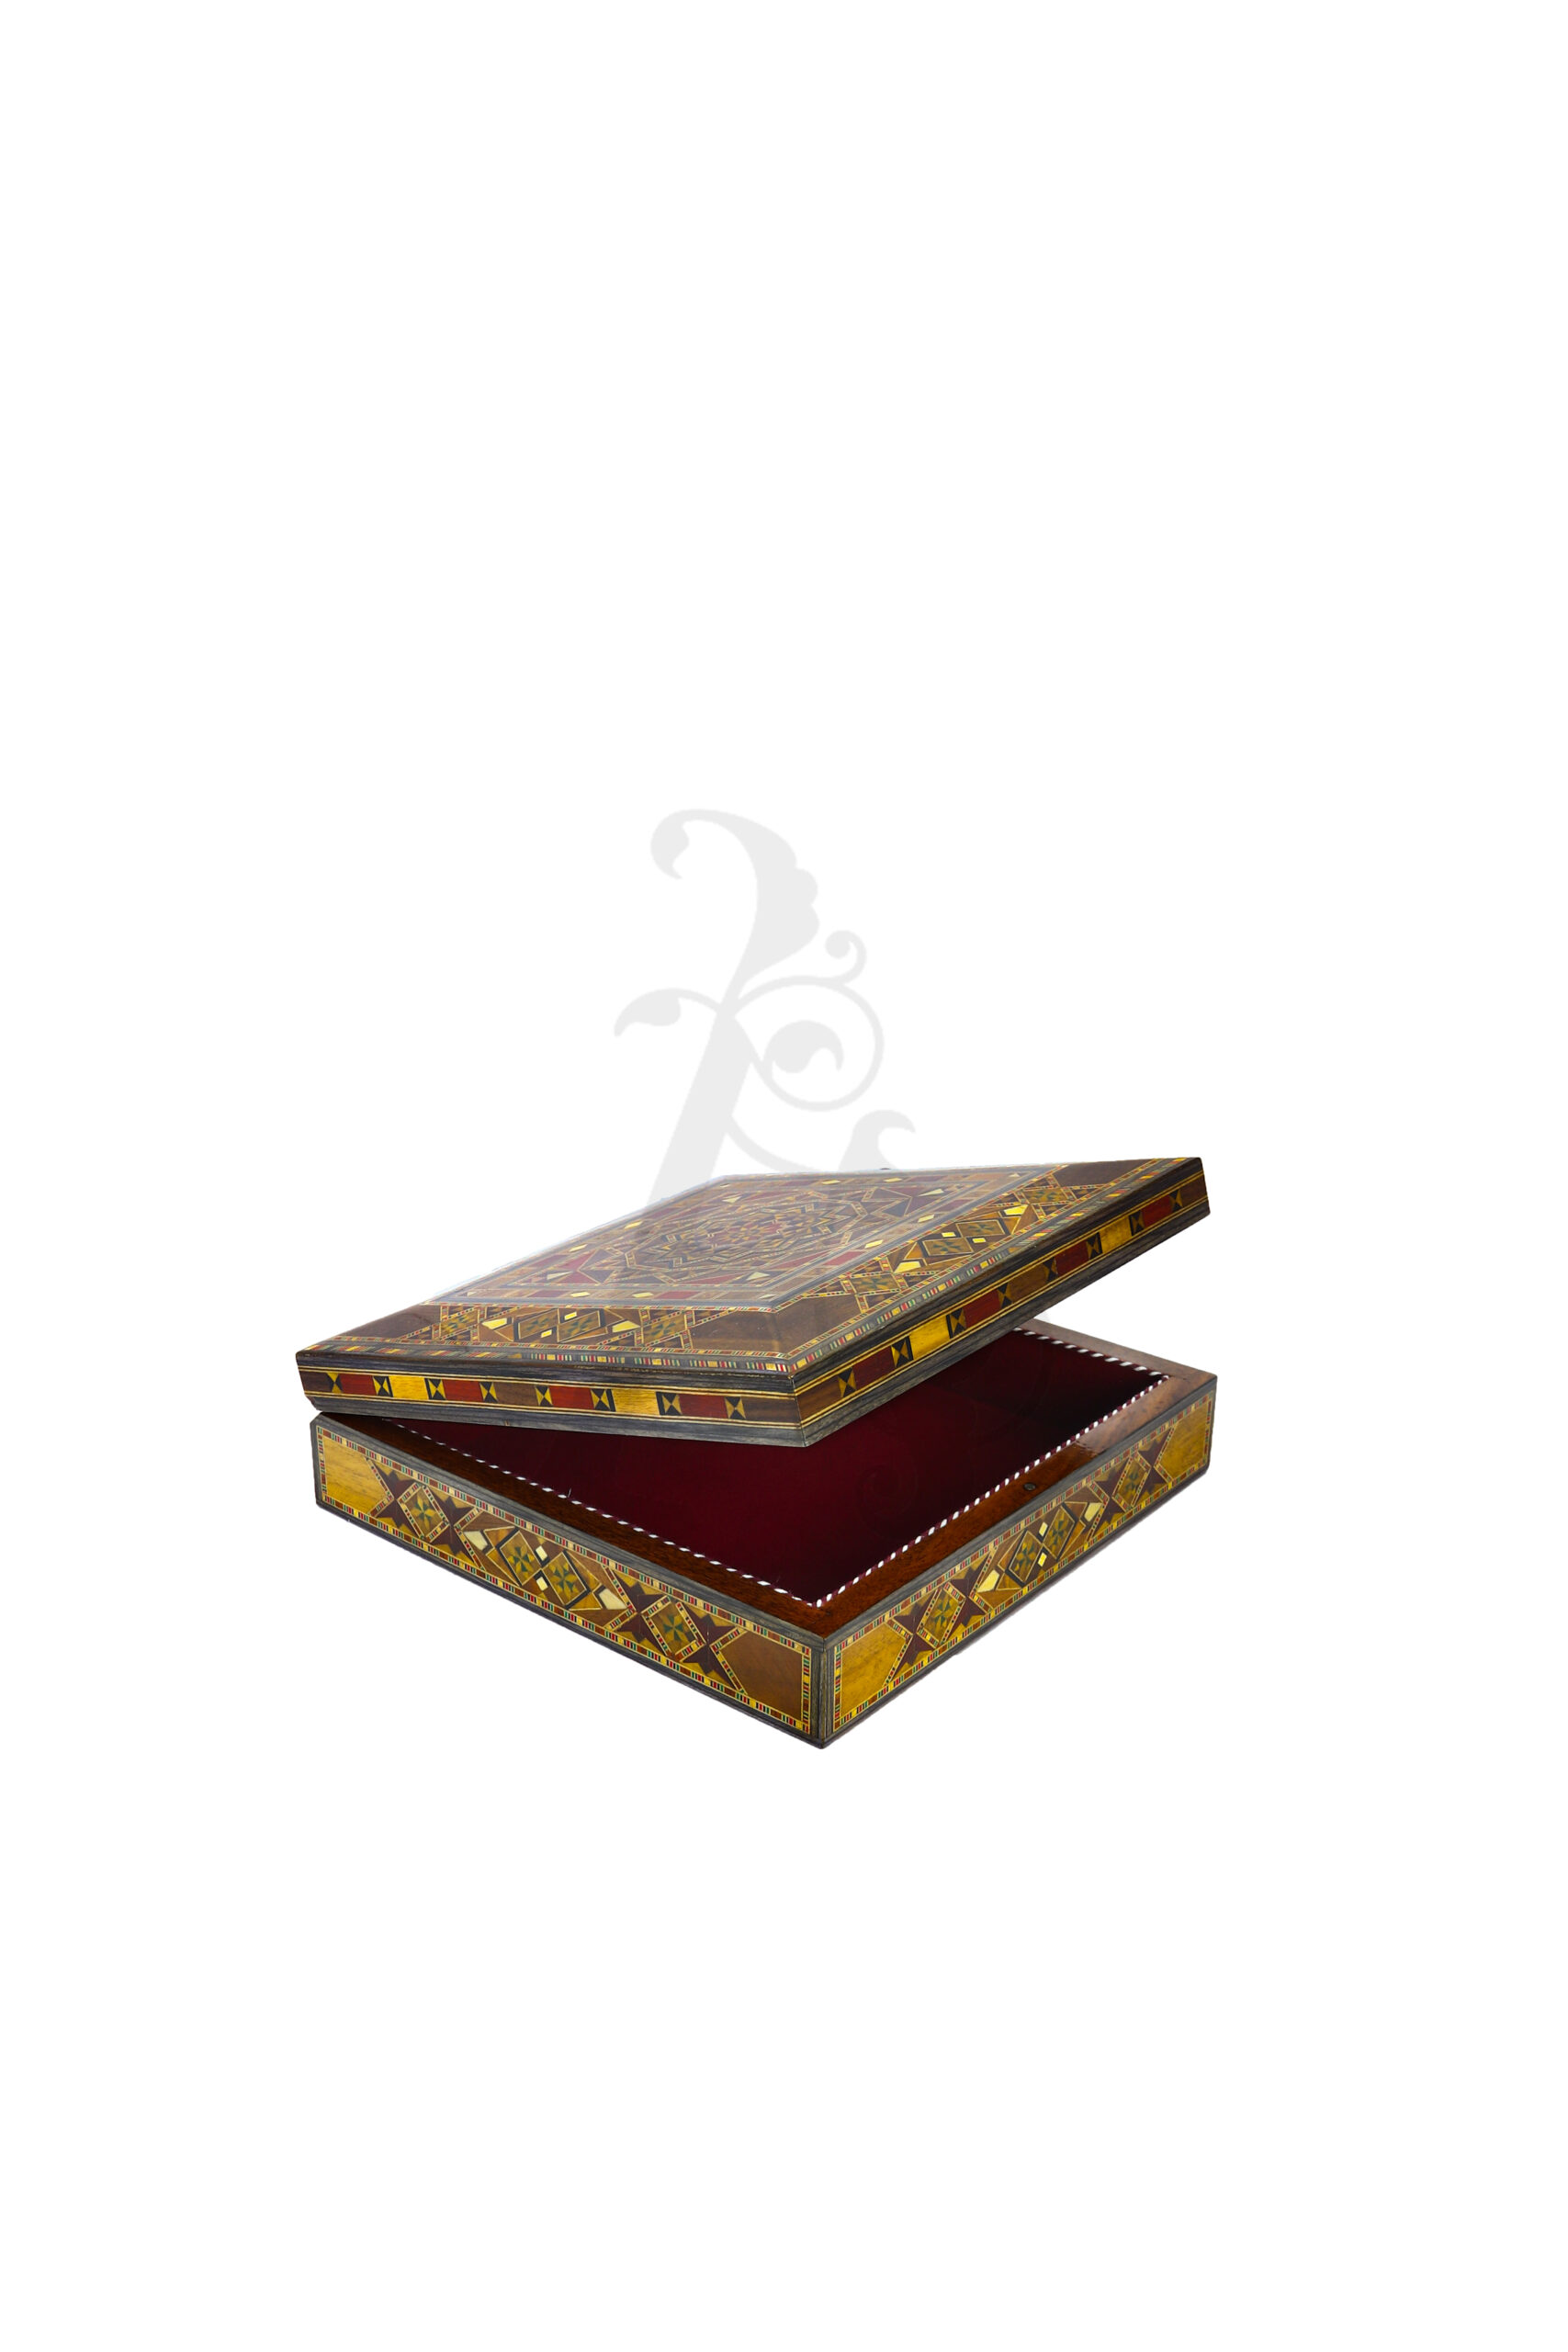 Buy Vintage Art Wooden Jewellery Boxes - Set of 3 Pieces